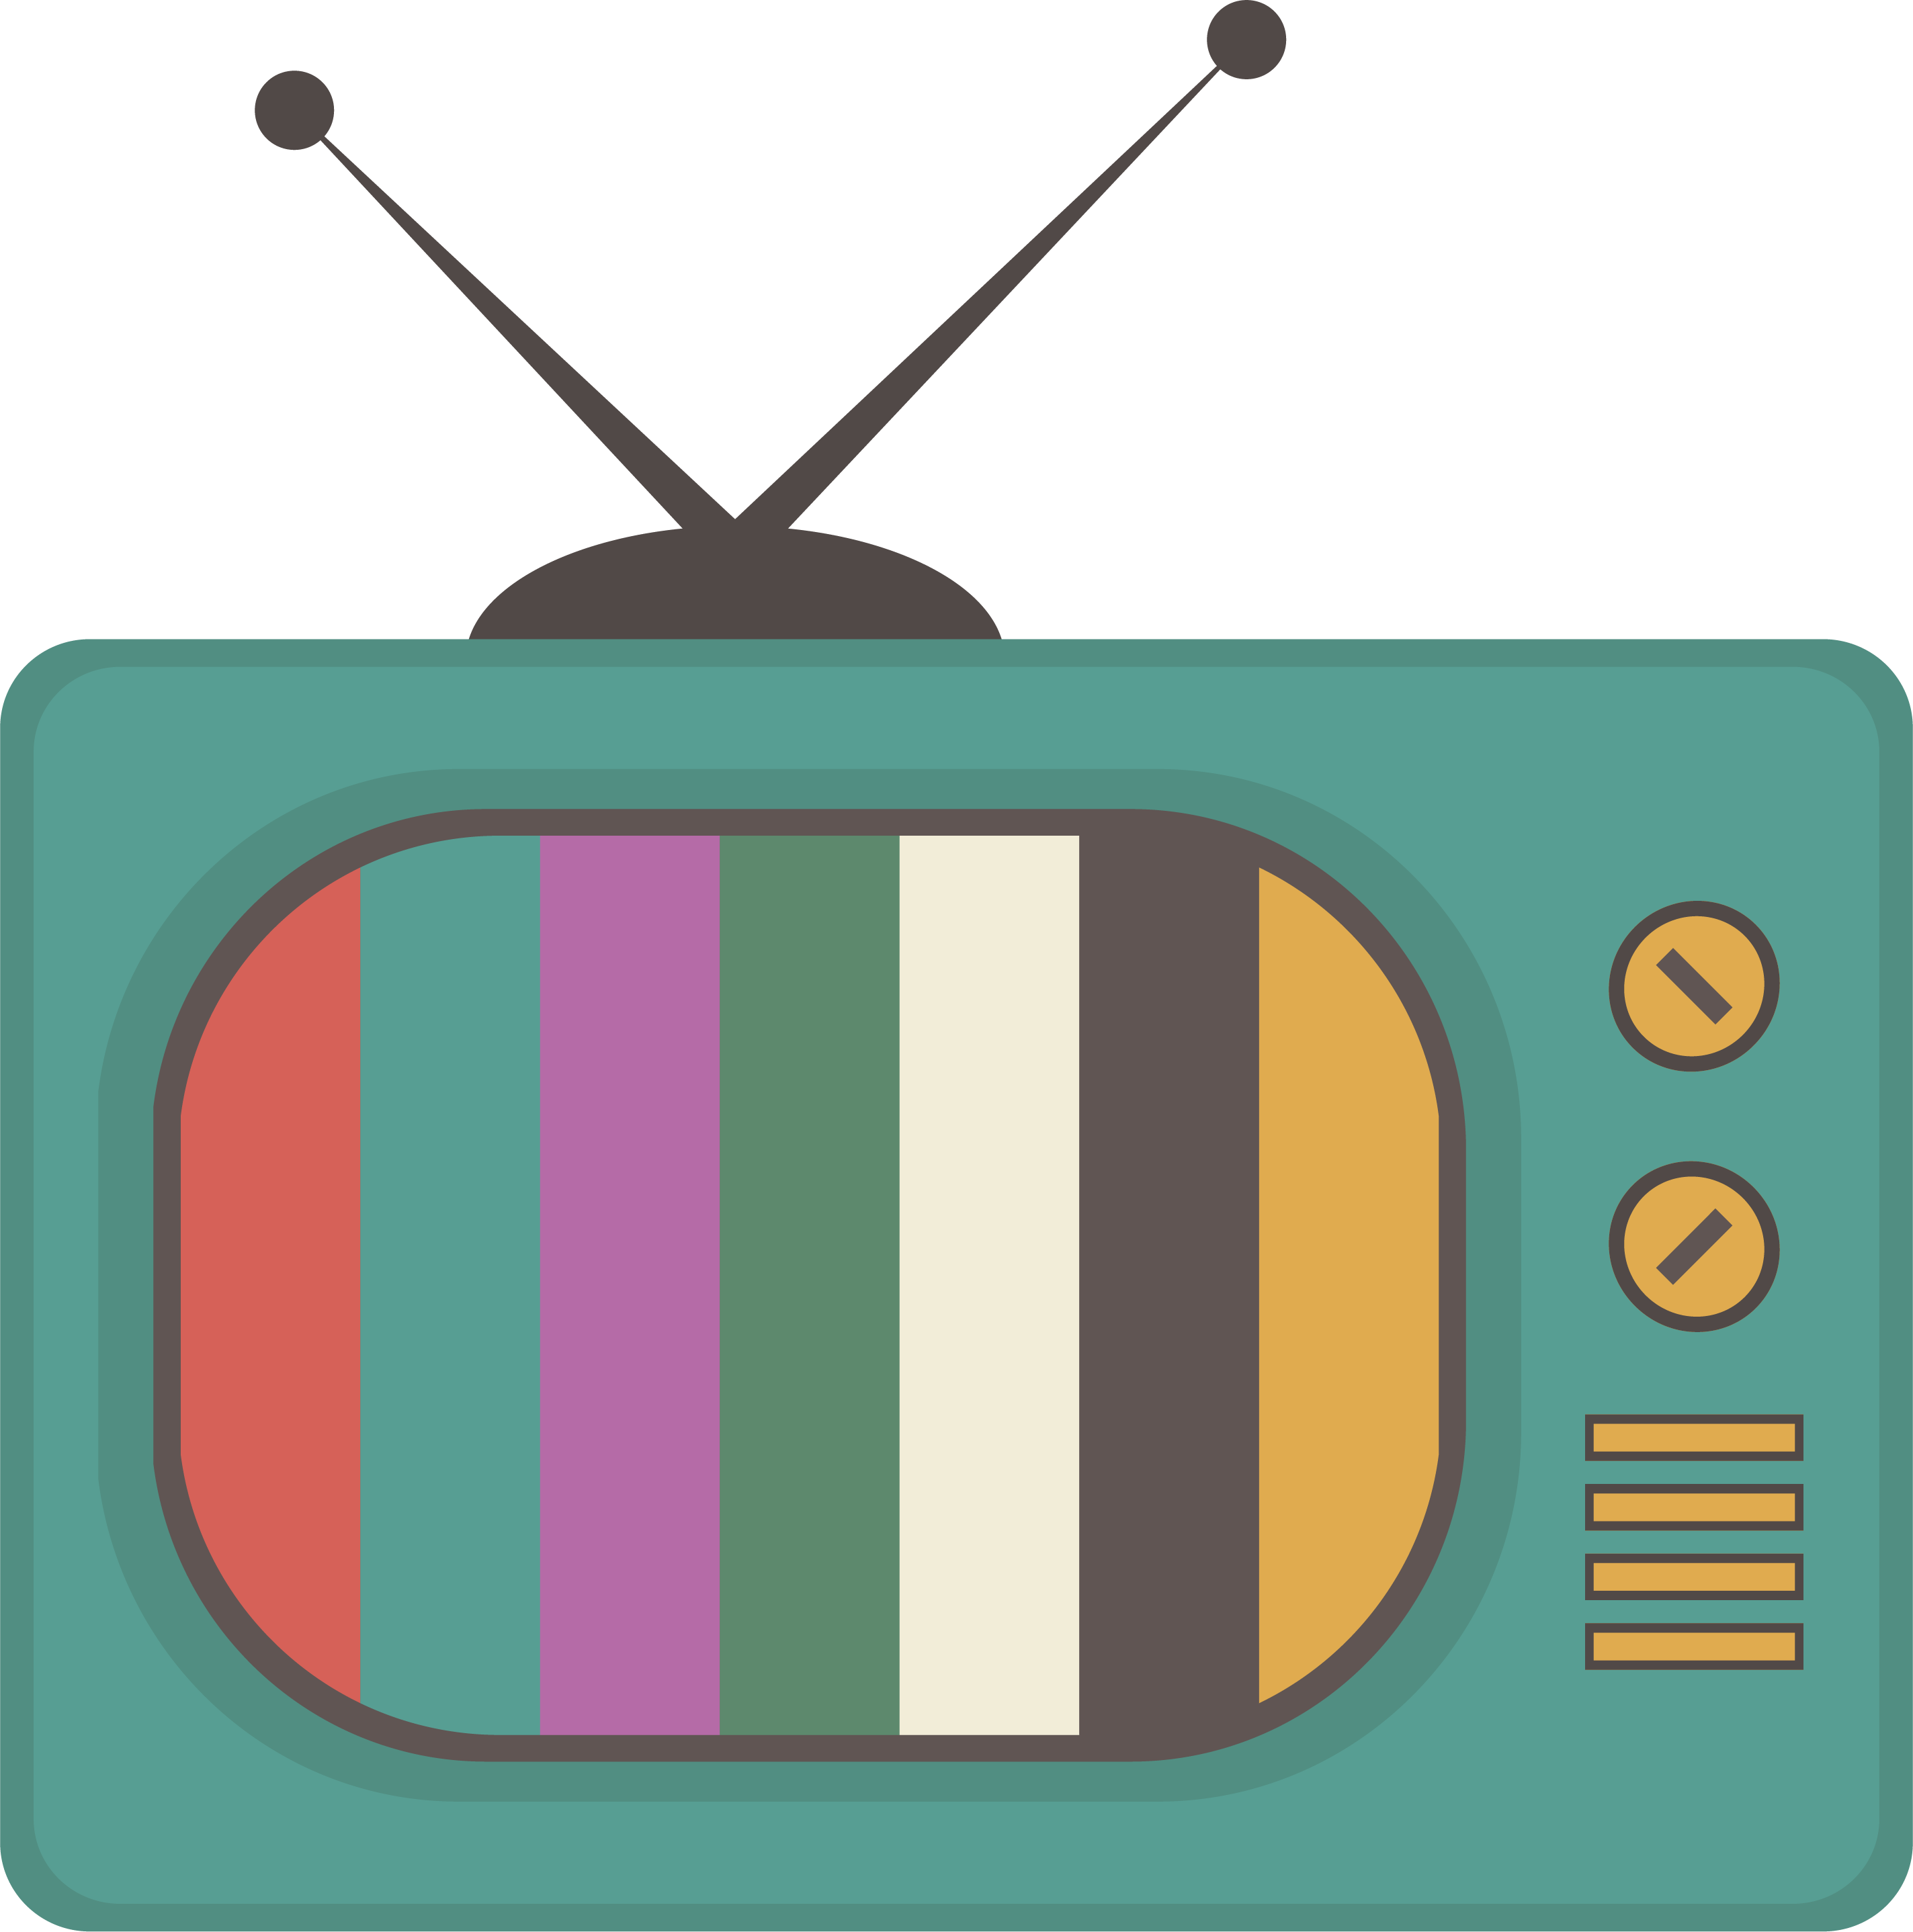 Retro old tv transprent. Television clipart square thing